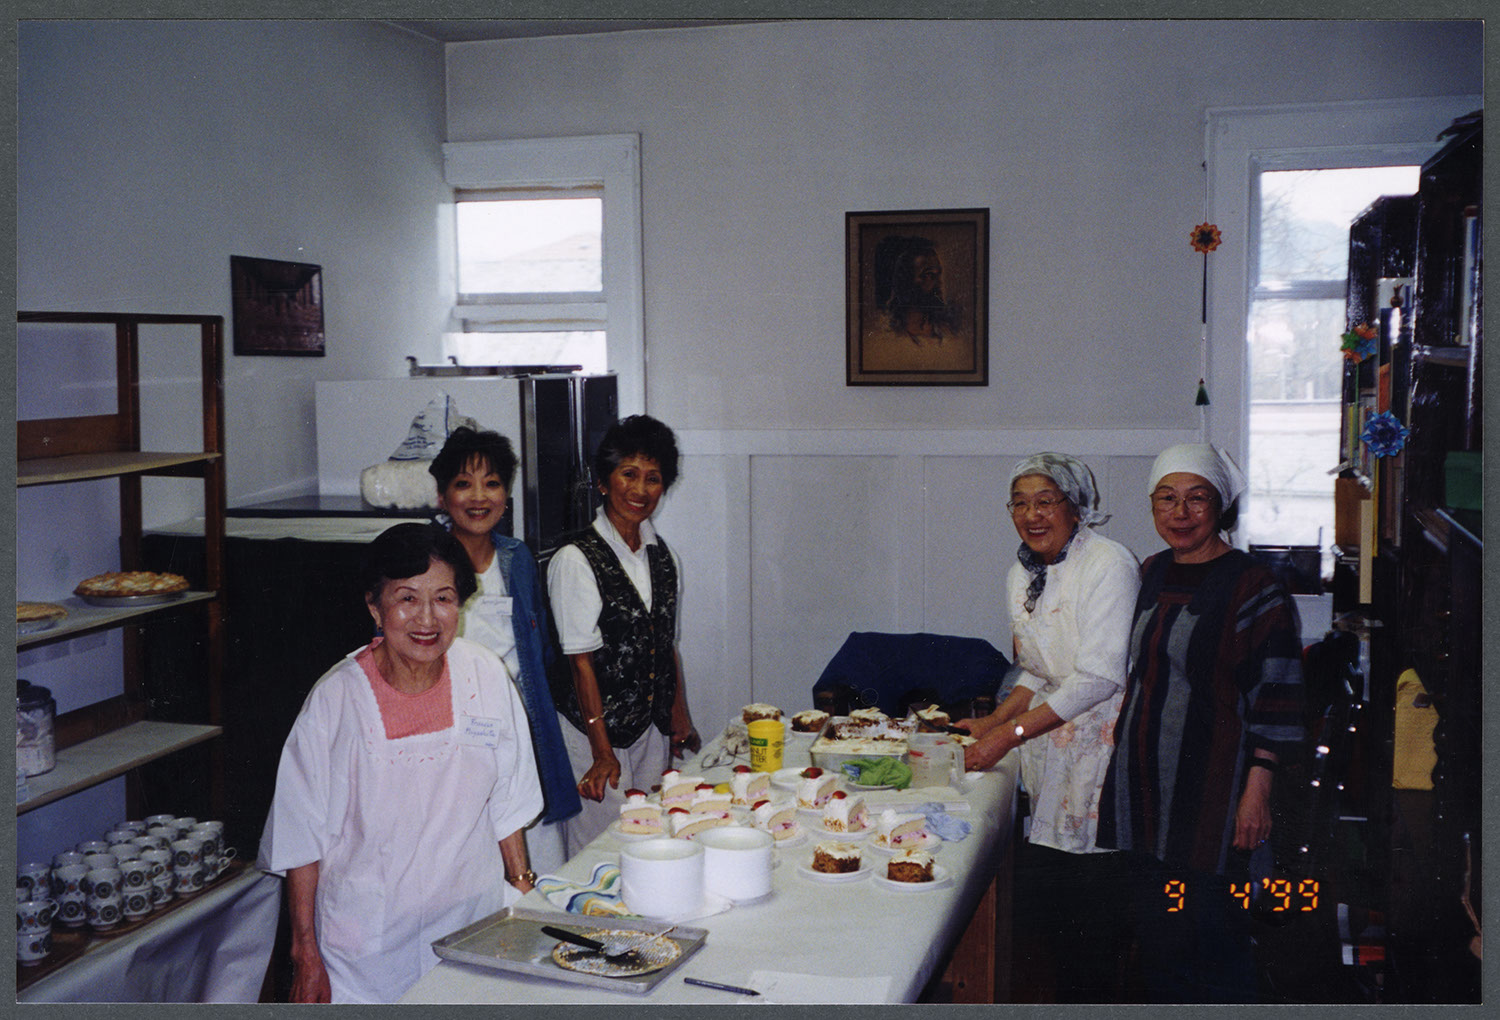 Spring bazaar at the church, 1999